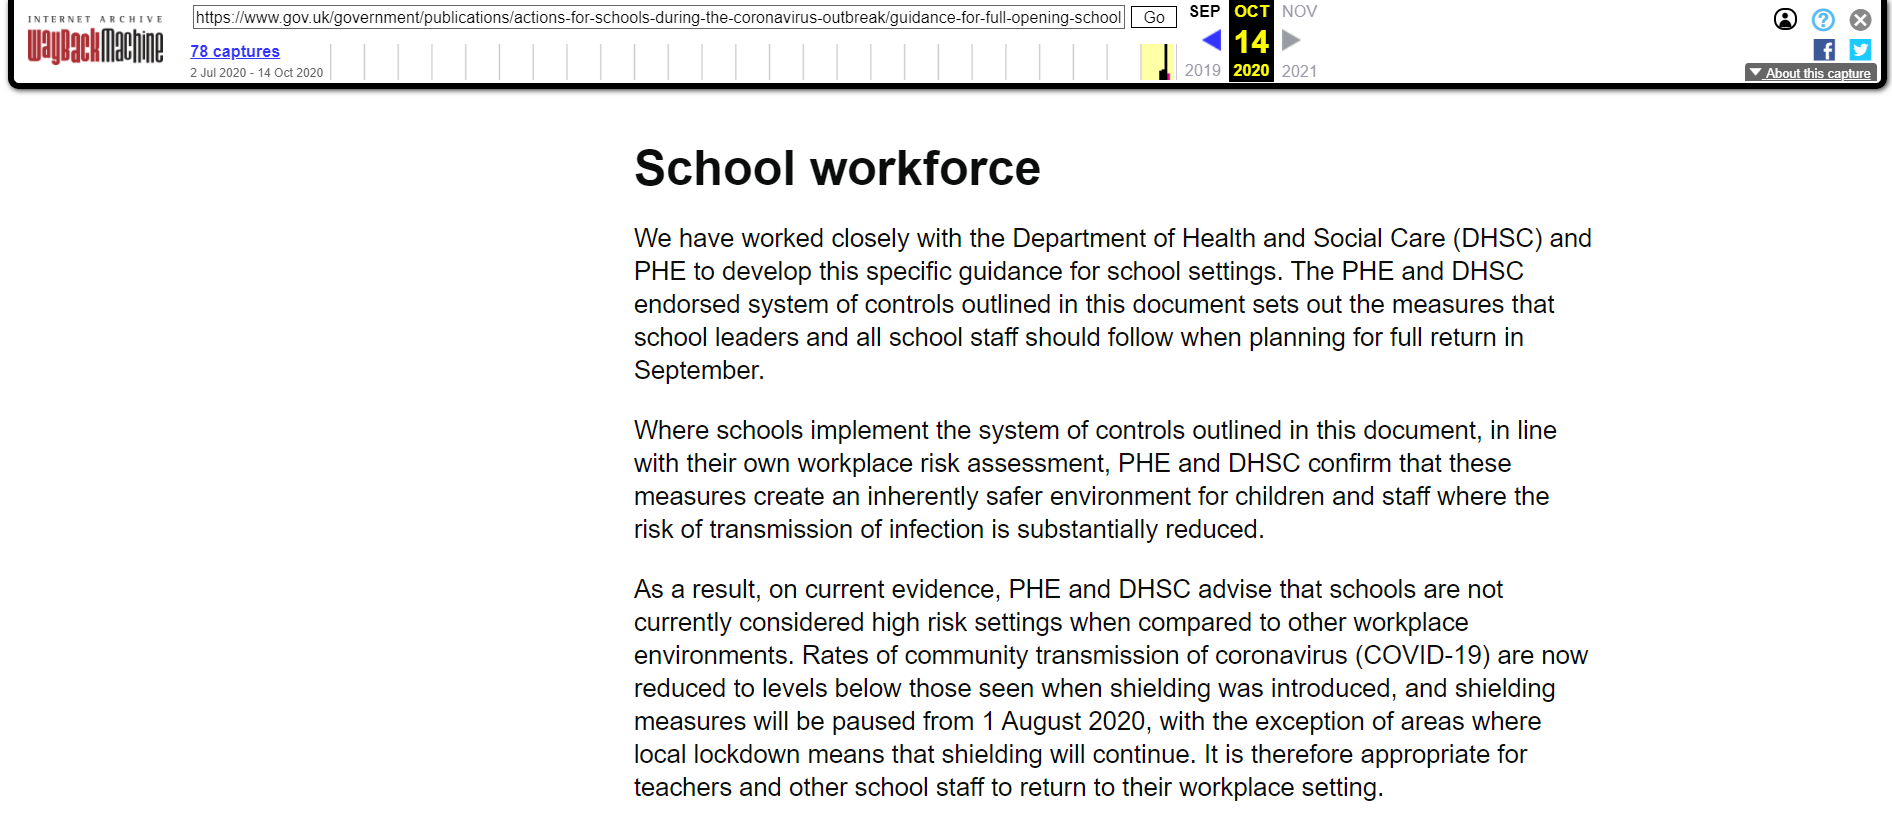 DfE guidance showing detail on high risk settings